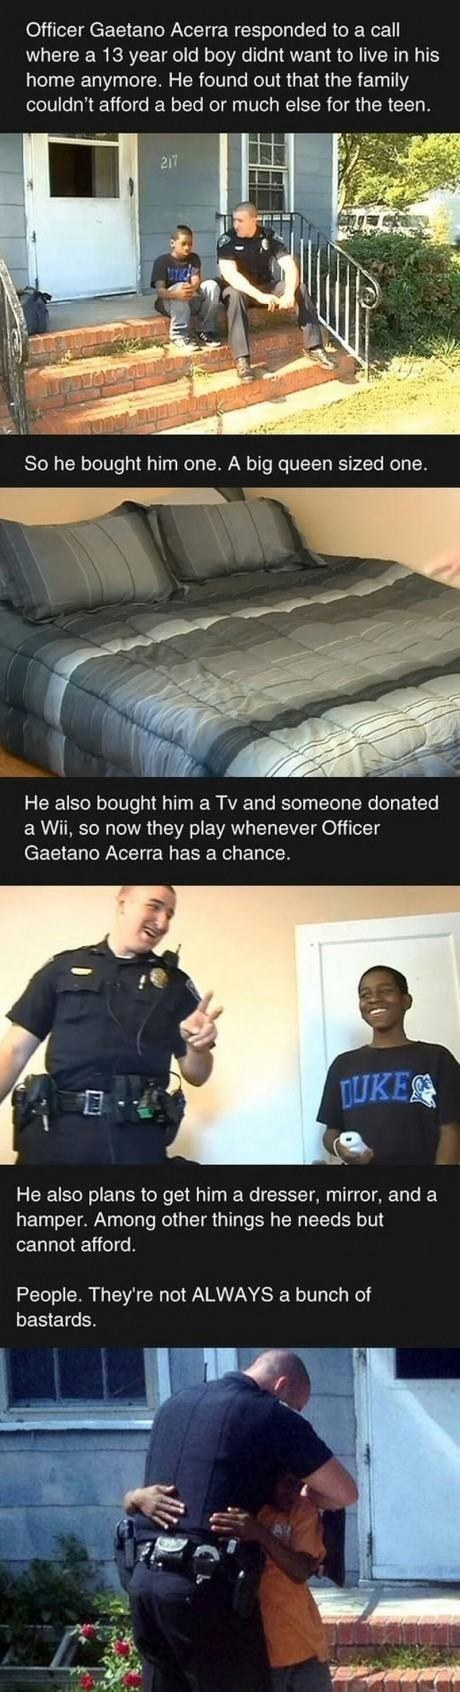 This officer's donations: